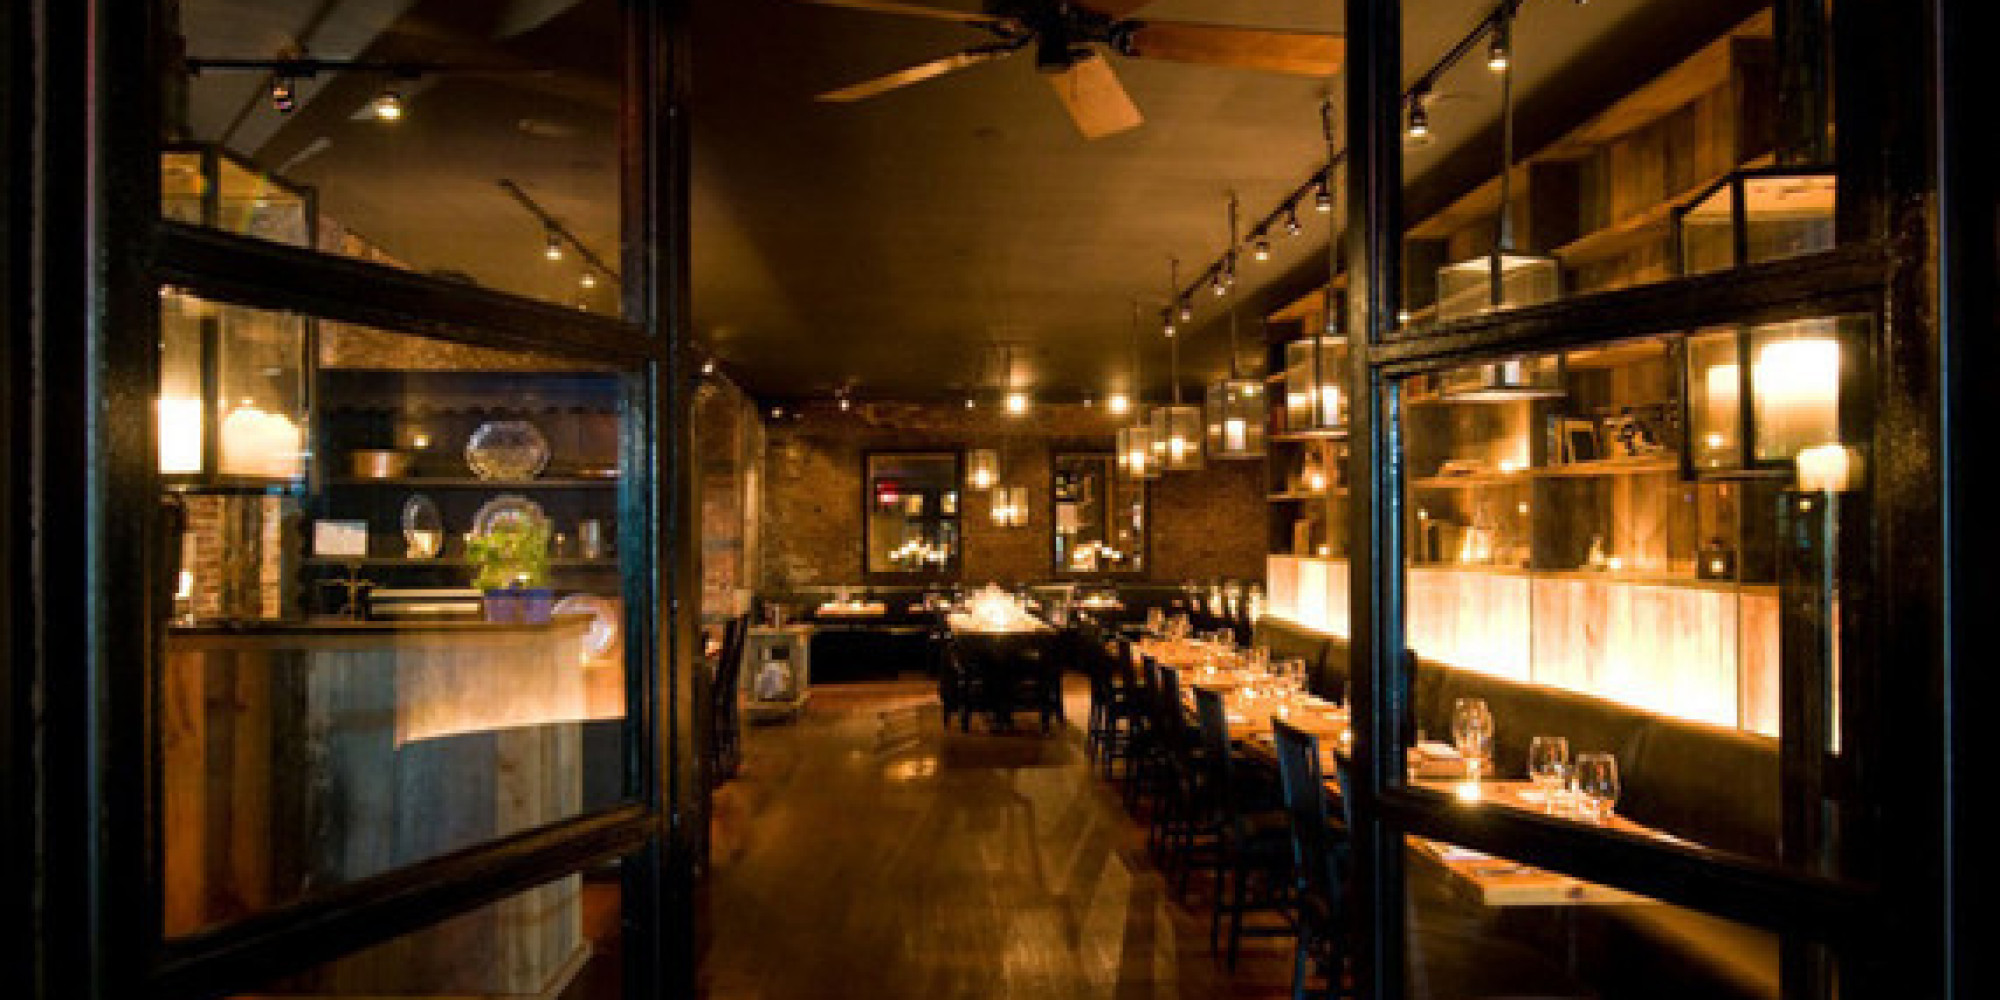 Restaurant A New York The Most Romantic Restaurants In New York City Huffpost